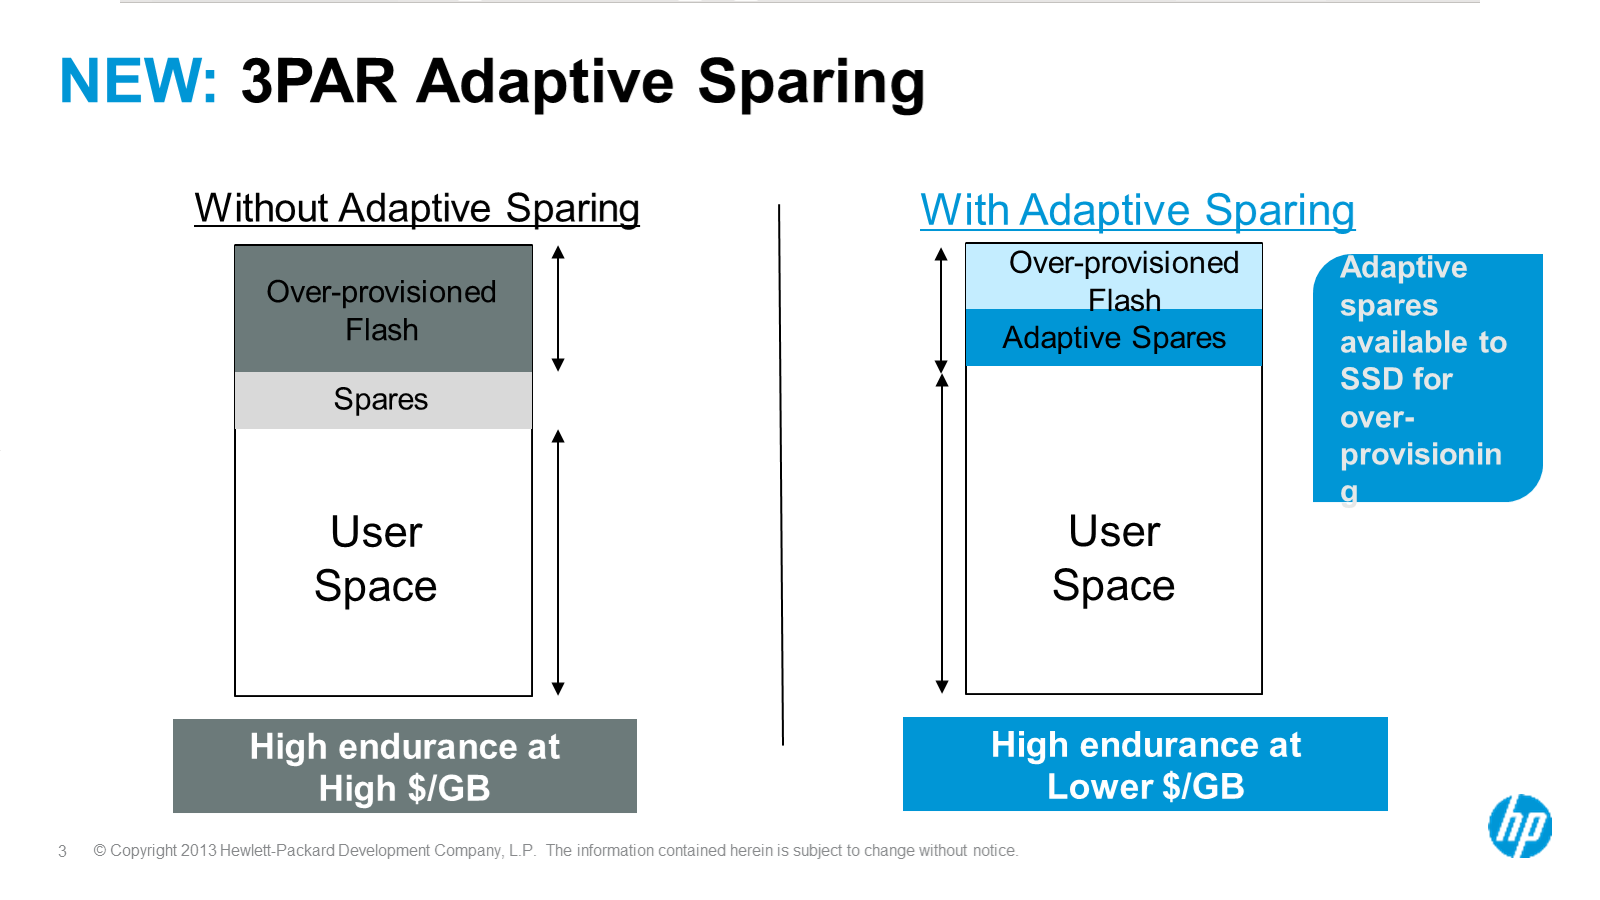 3PAR Adaptive Sparing: gain capacity without sacrificing availbility